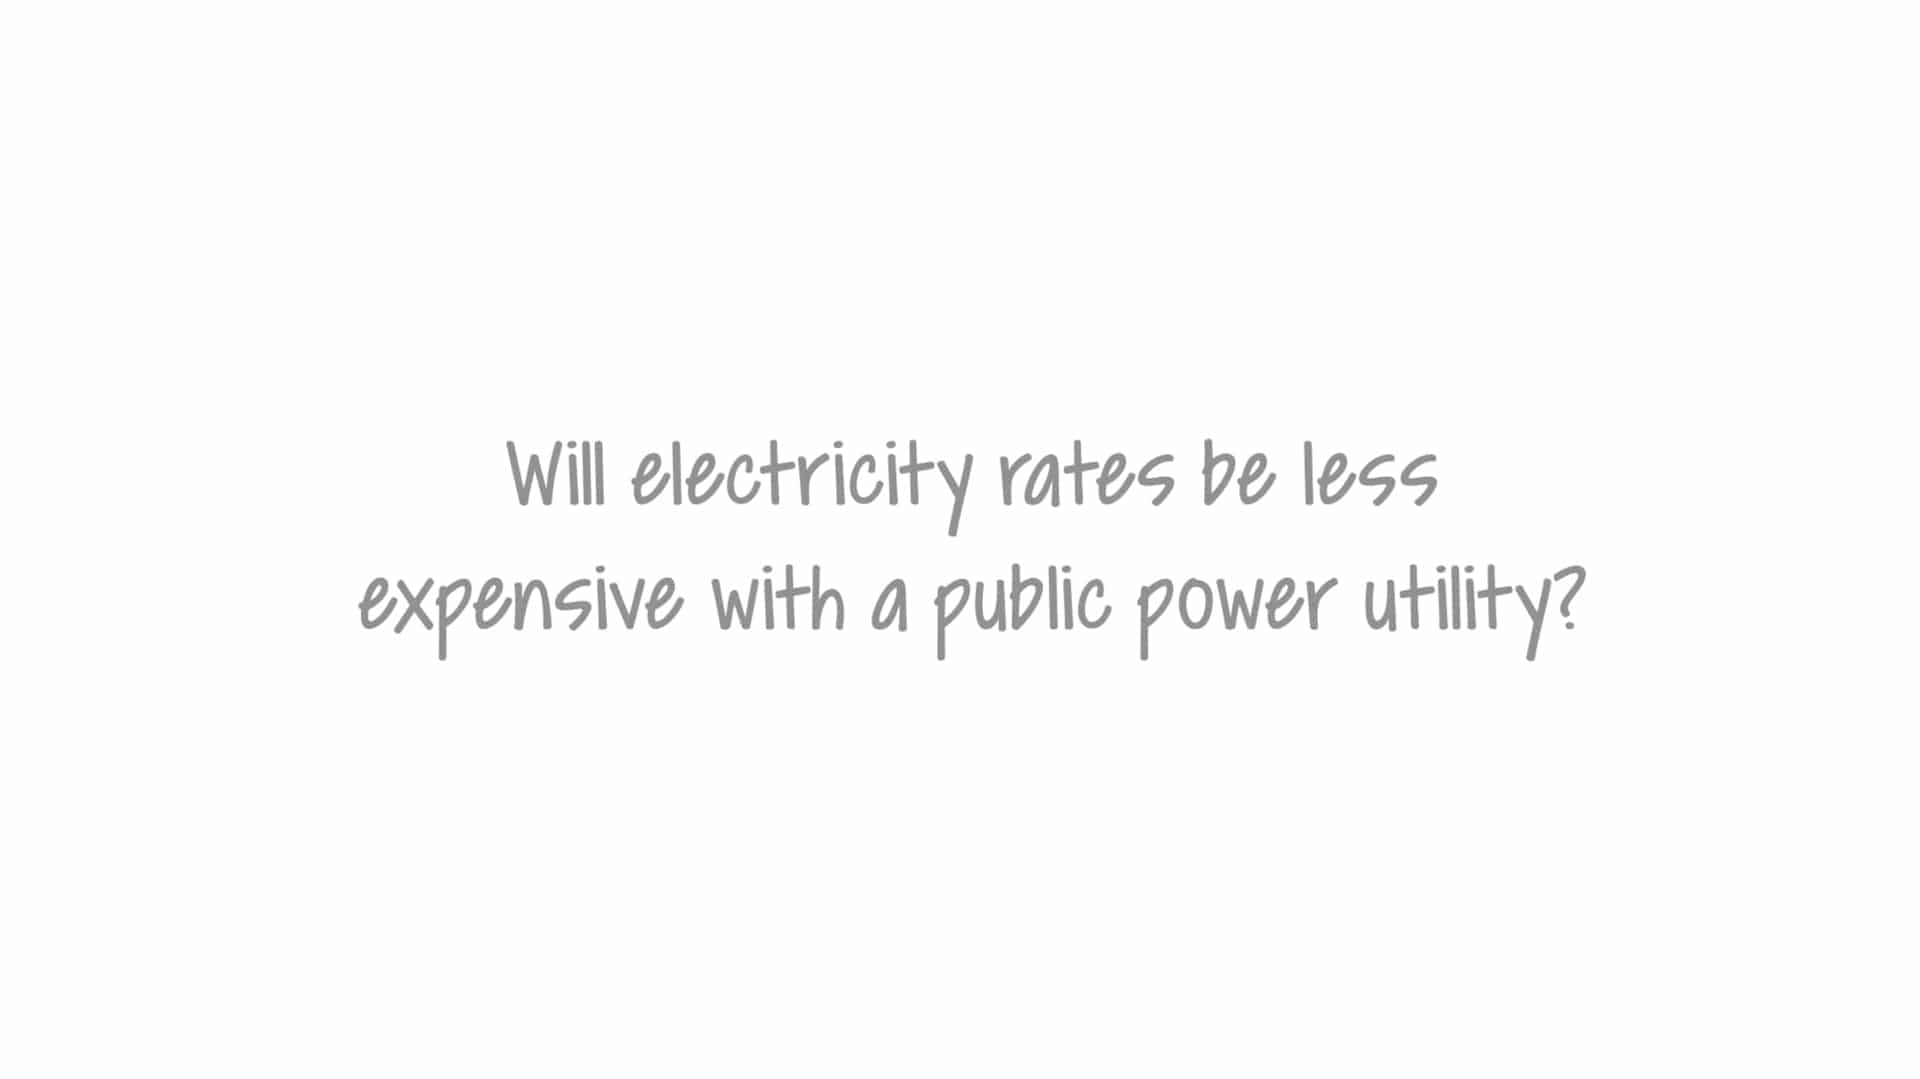 Will electricity rates be less expensive with a public power utility